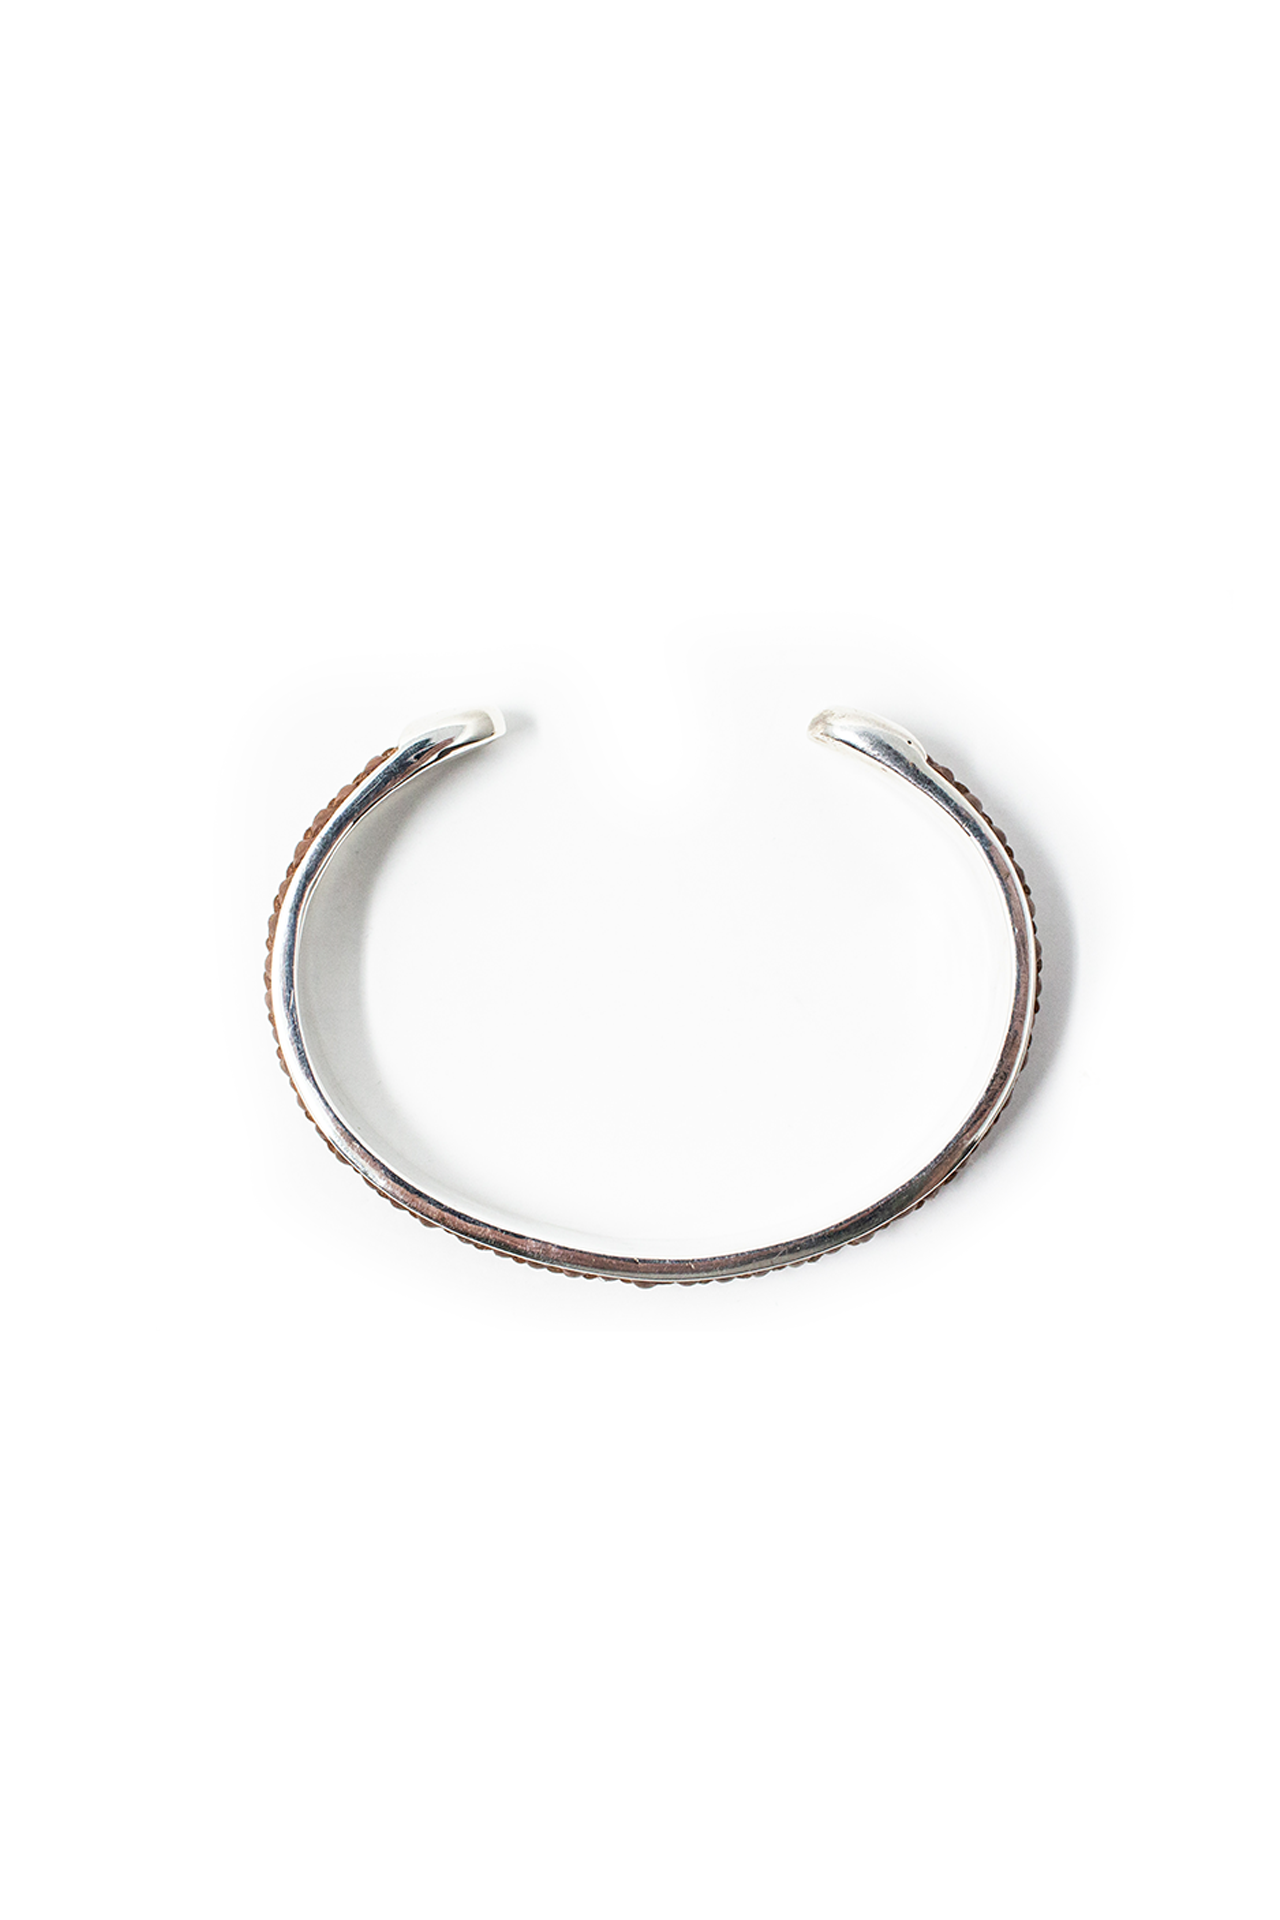 Aerial View Silver Satin Finish Bangle With Brown Leather